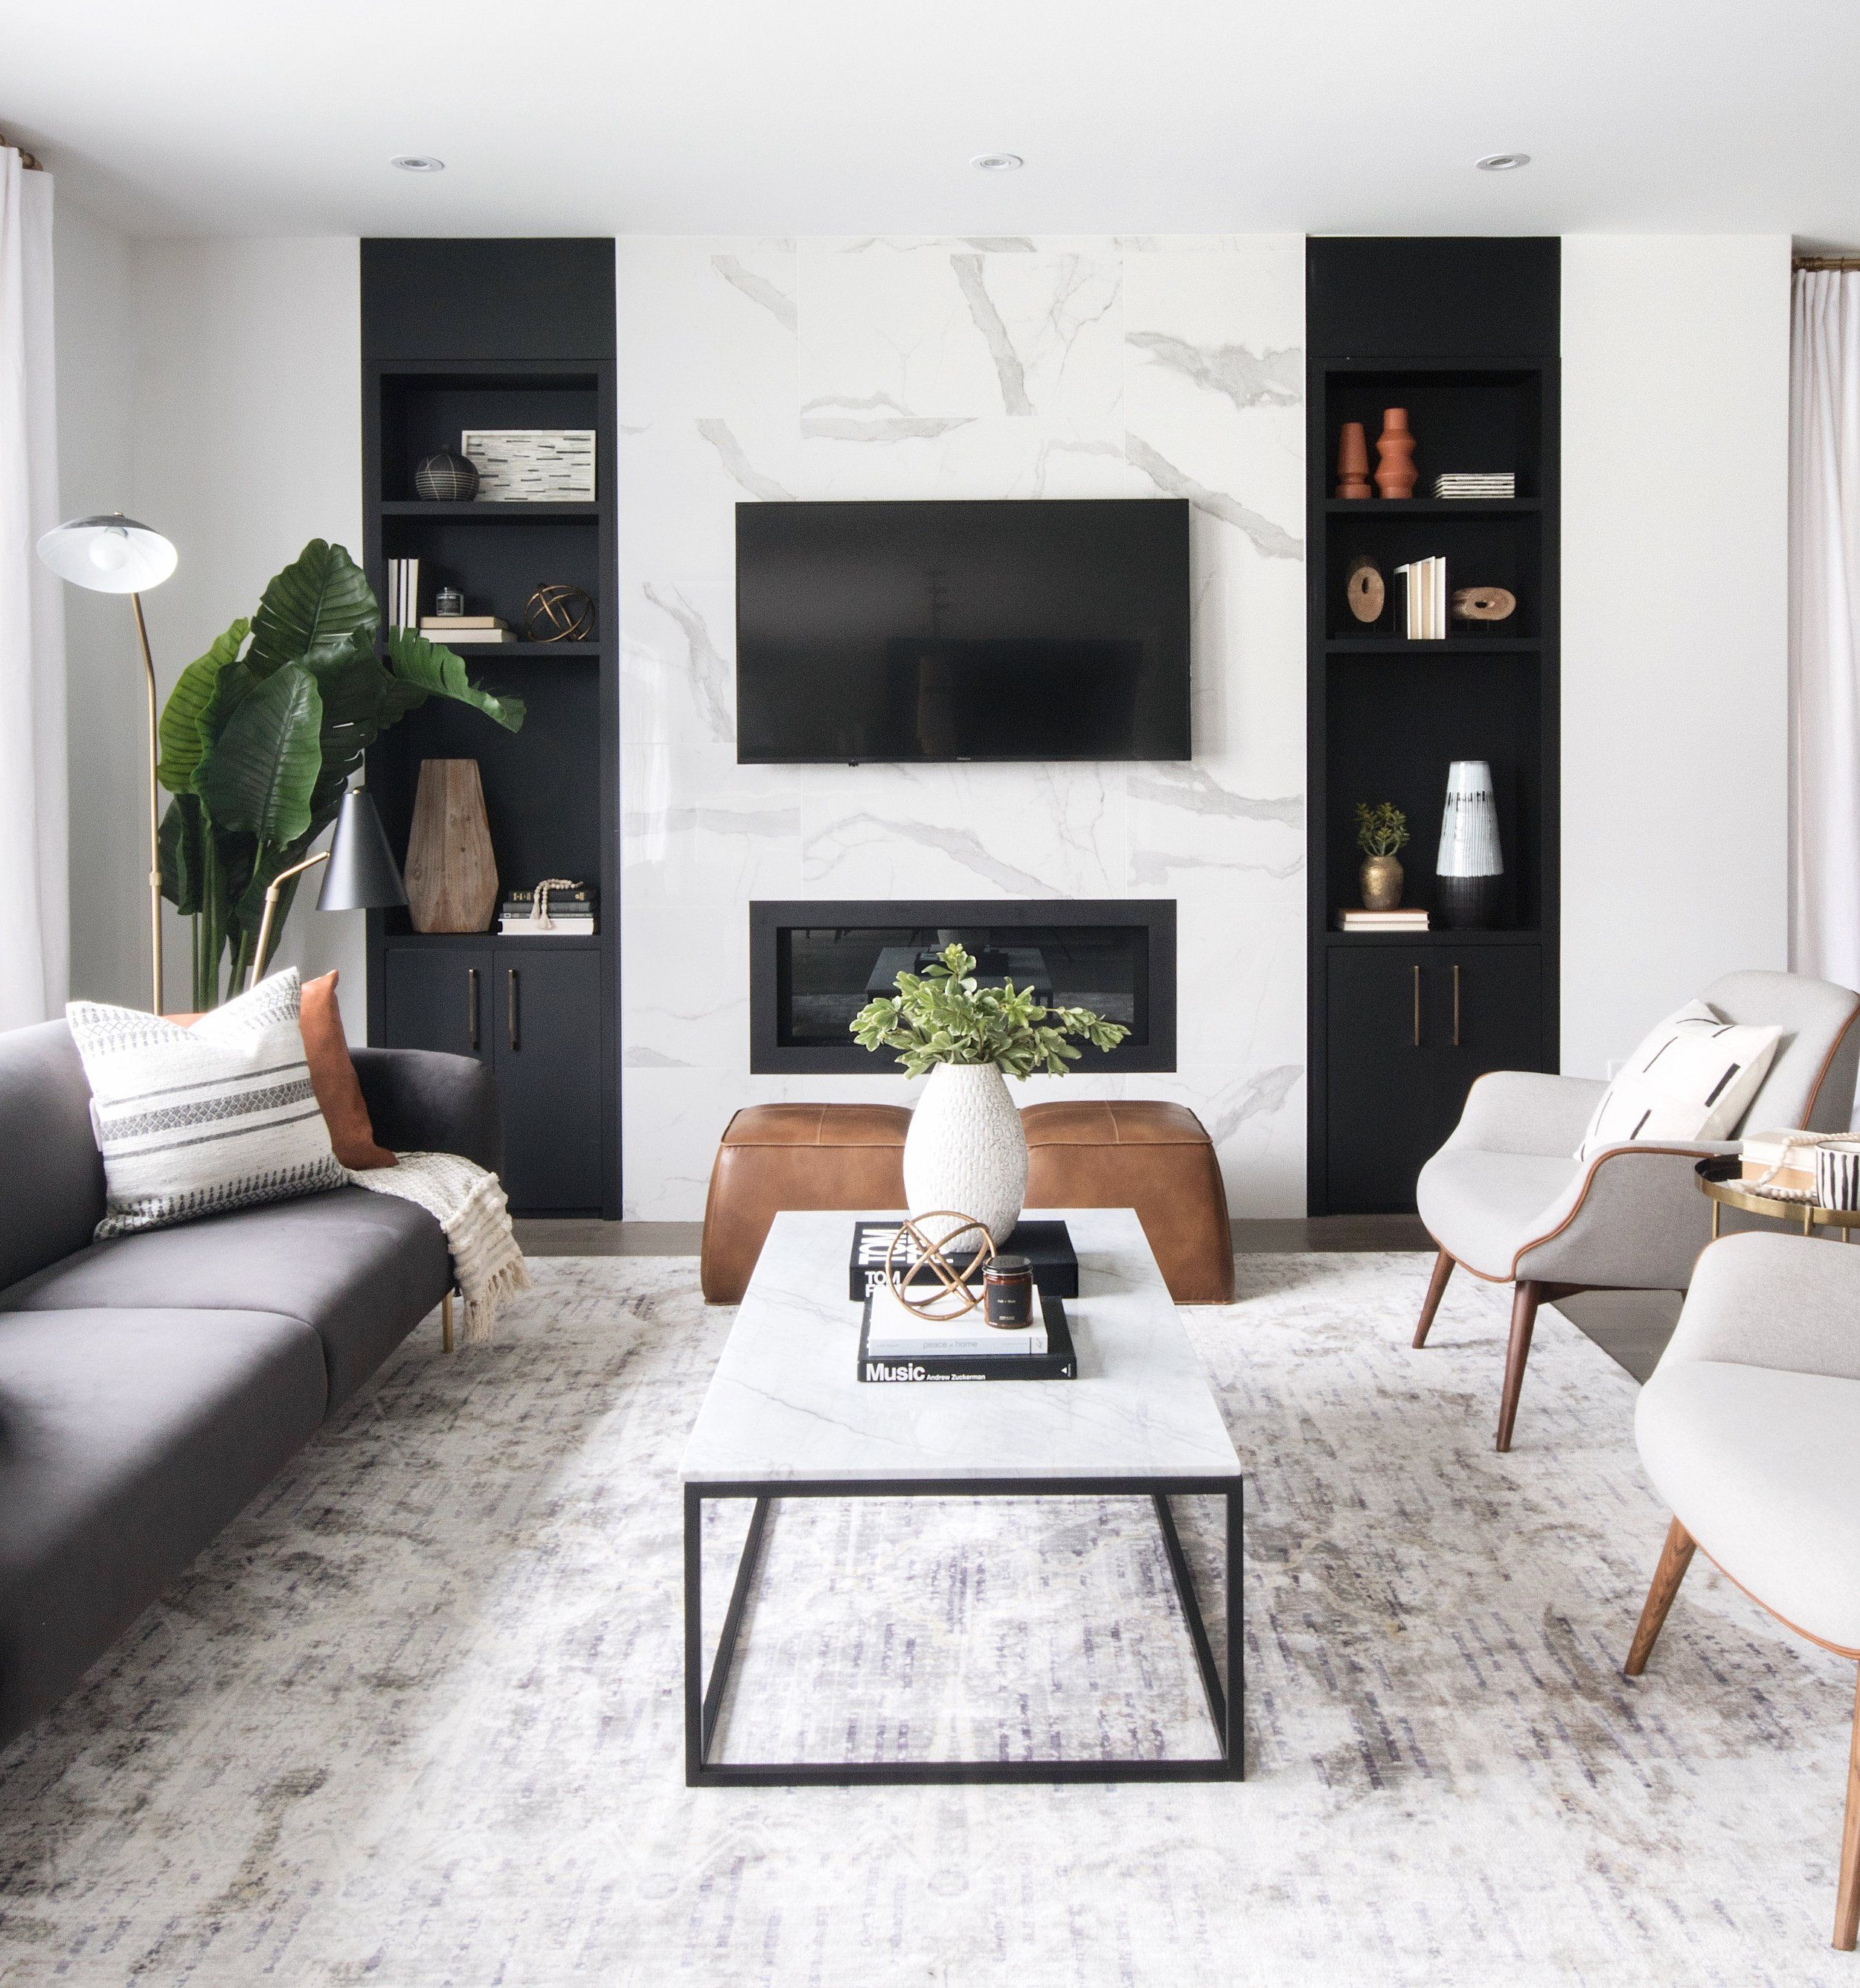 Leclair Decor S Cedarbreeze Project Is Both Modern And Cozy The